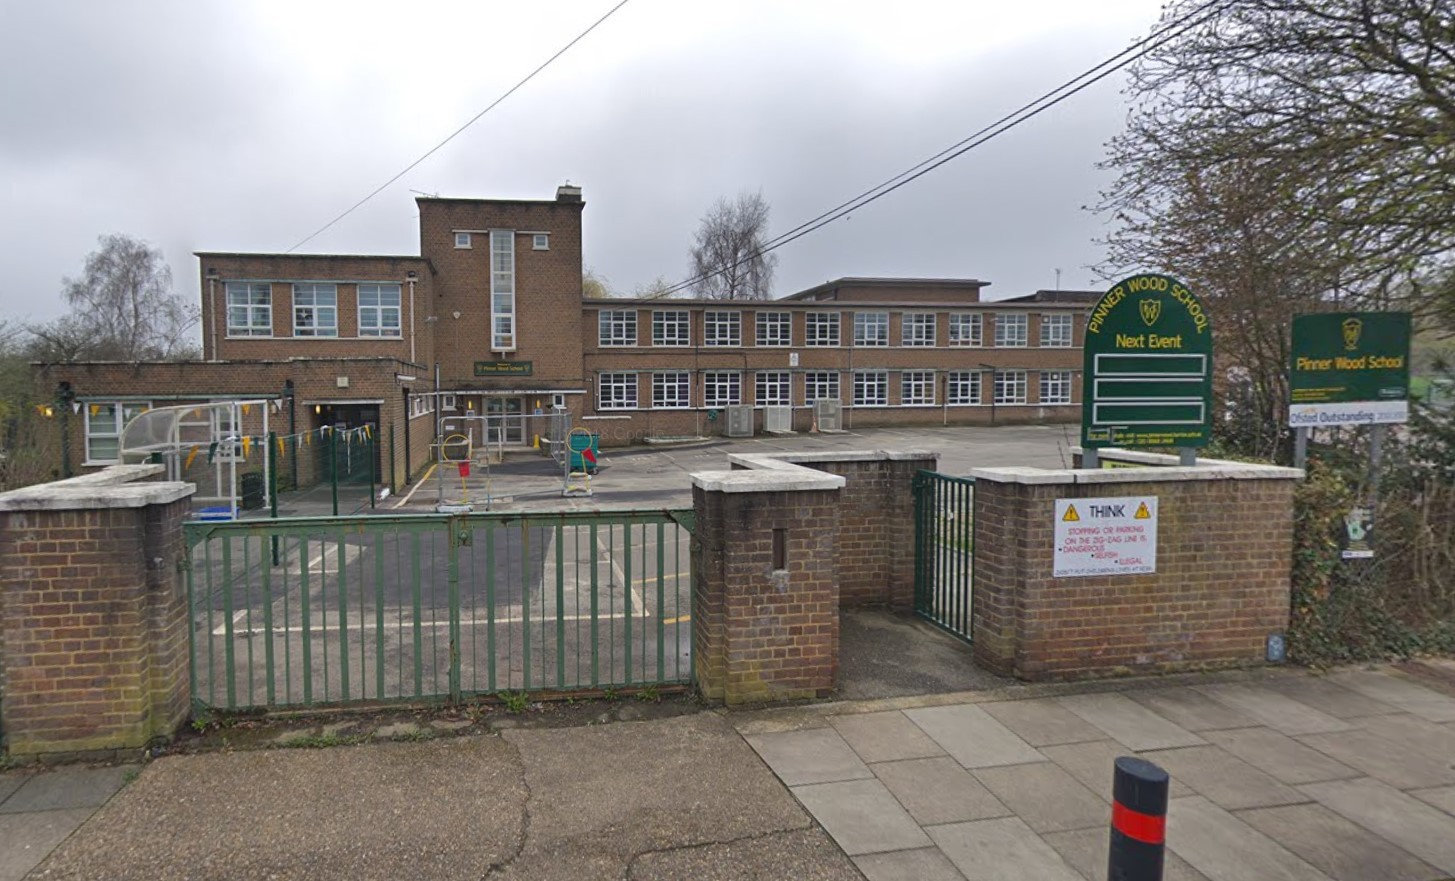 Pinner Wood School (Image: Google Maps)